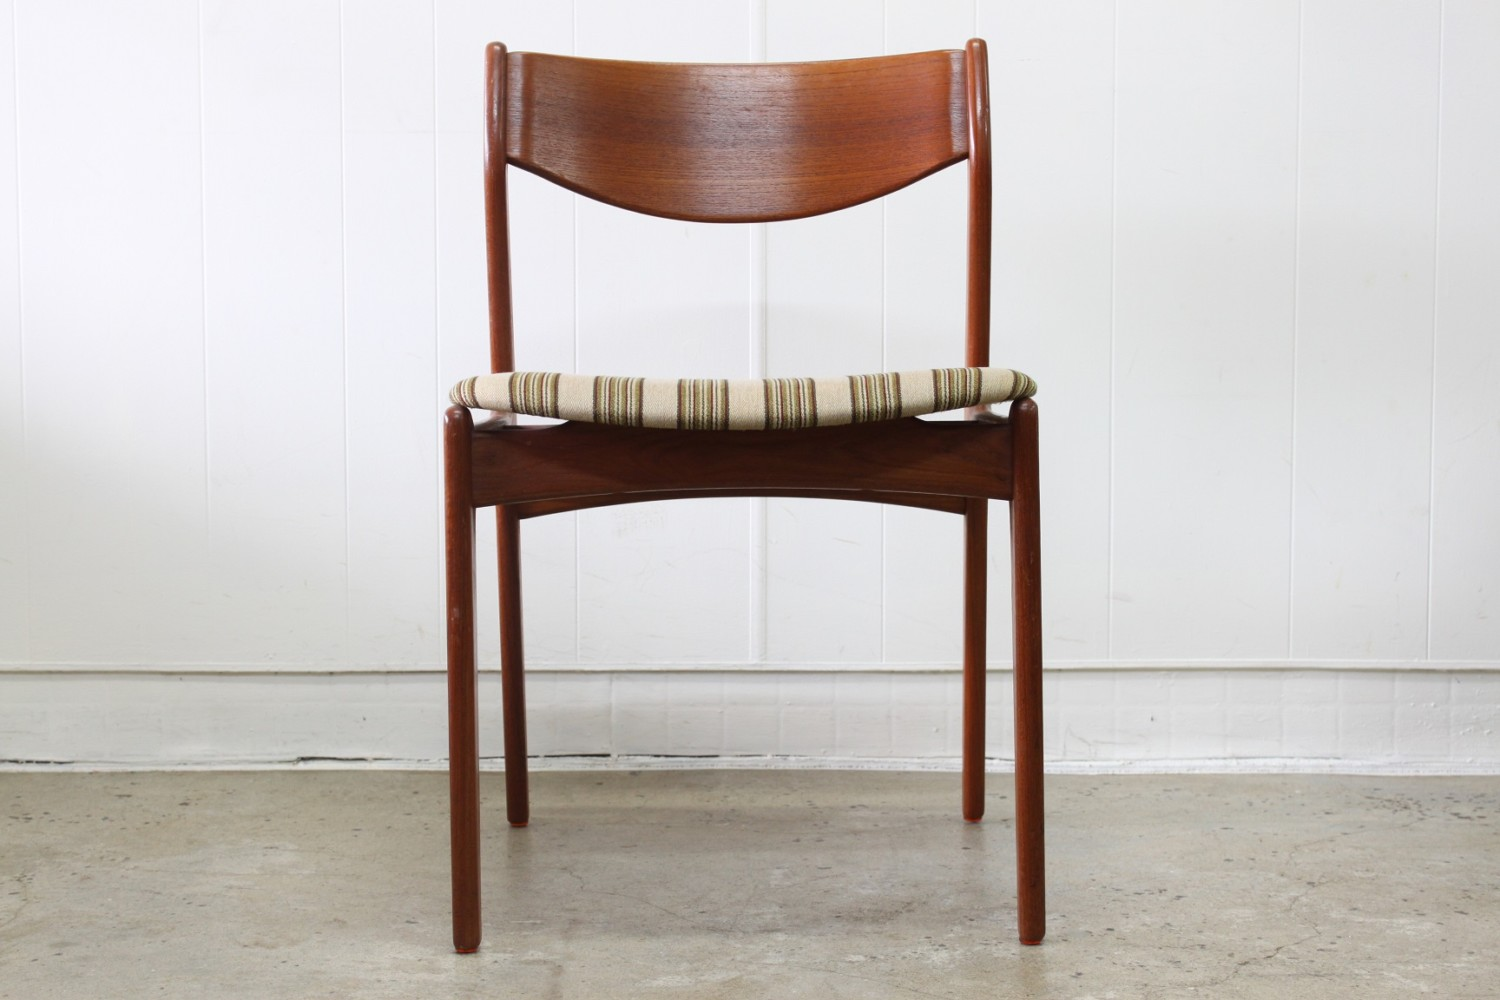 Danish Teak Chairs By P.E. JØrgensen